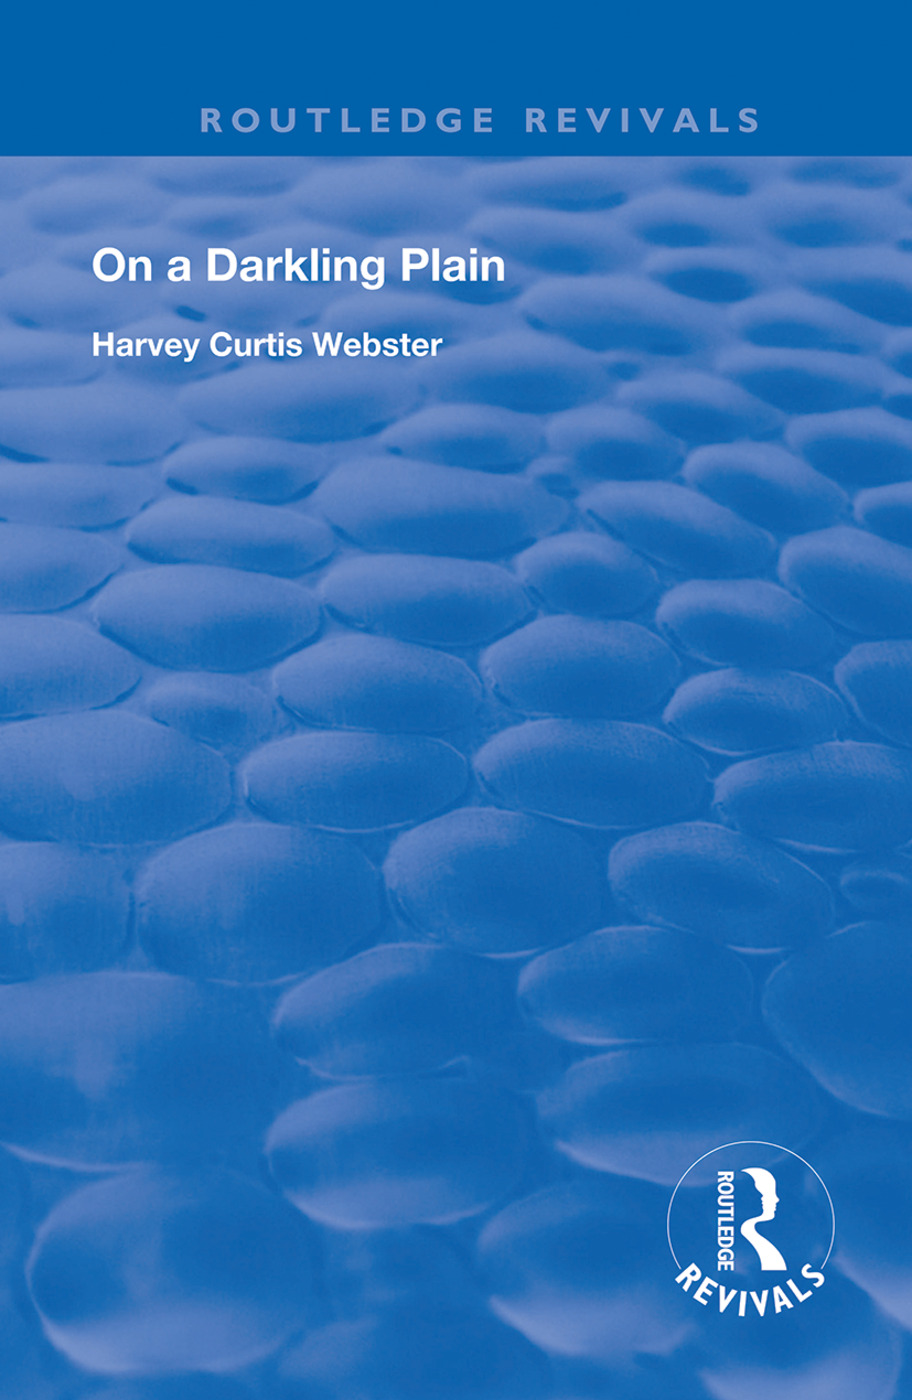 On a Darkling Plain book cover